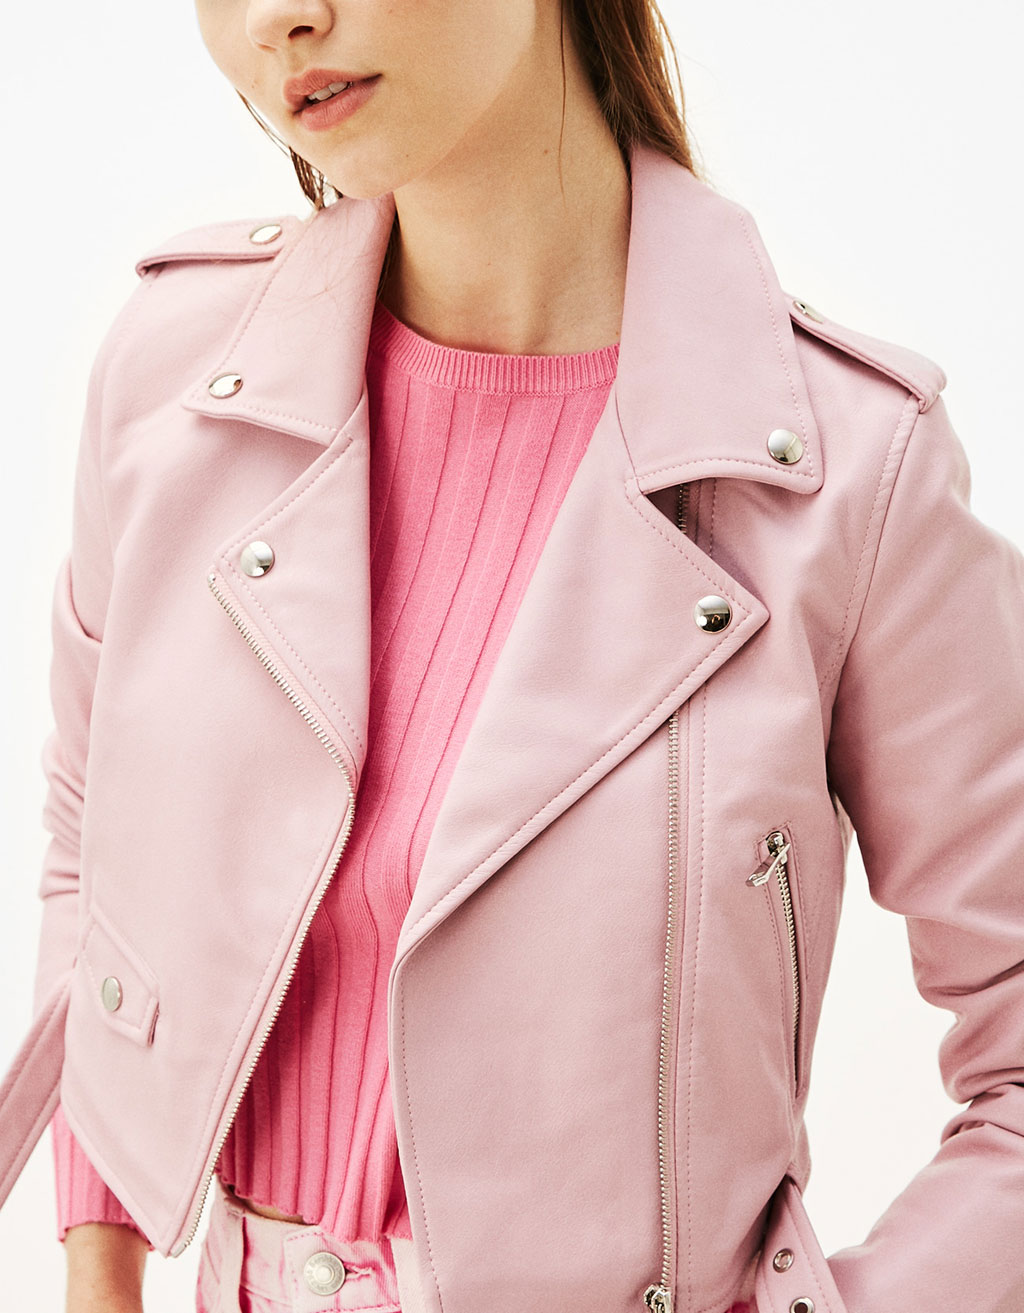 Women's Jackets - Autumn Winter Collection | Bershka